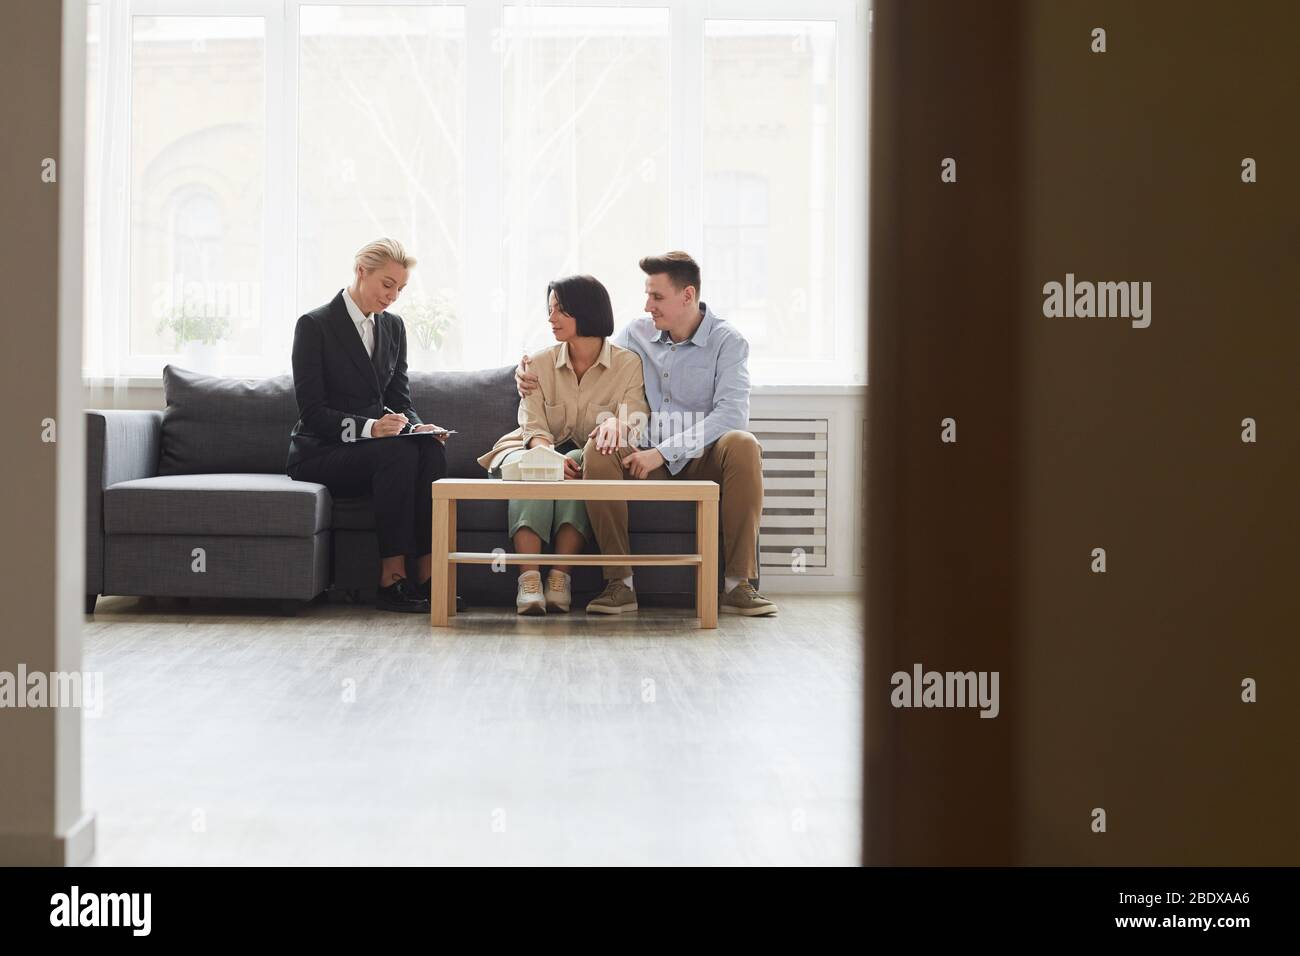 Mature real estate agent in black suit sitting on sofa together with young couple and signing the contract Stock Photo